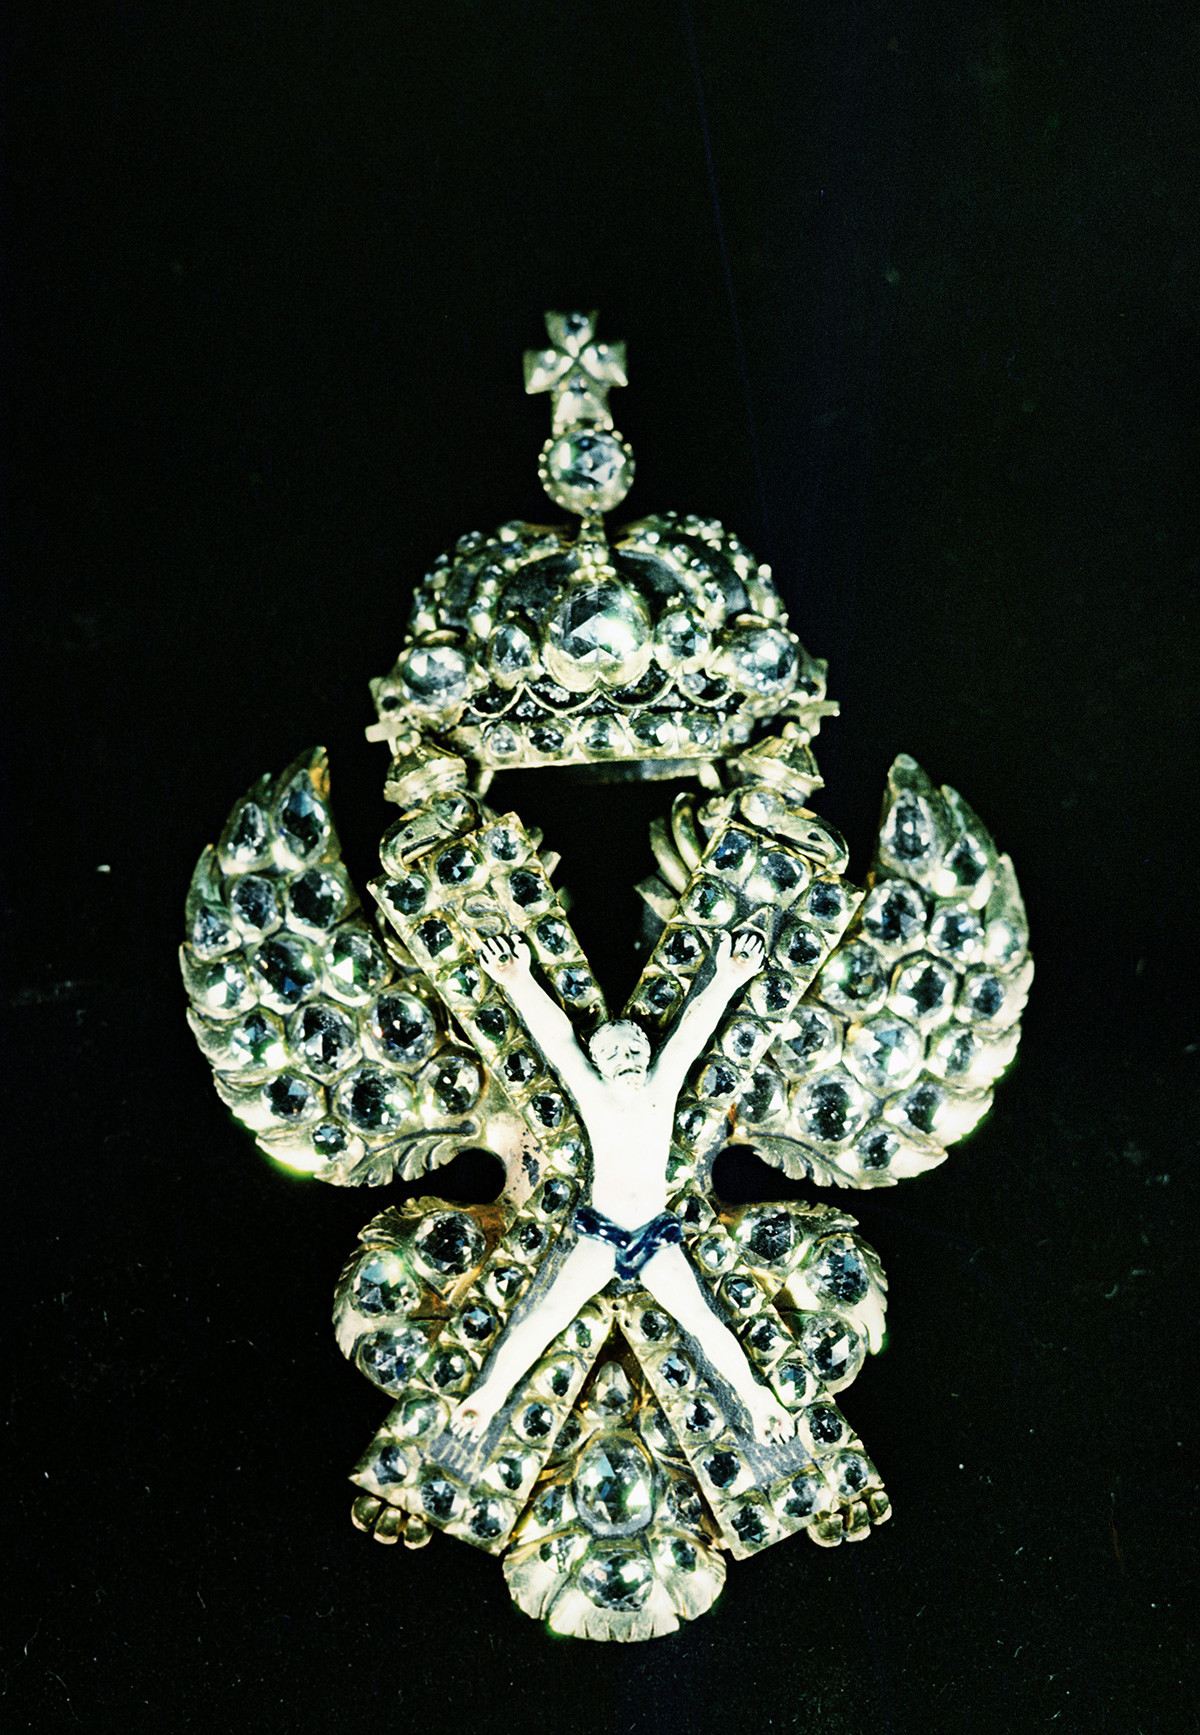 The Badge of the Order of St. Andrew.